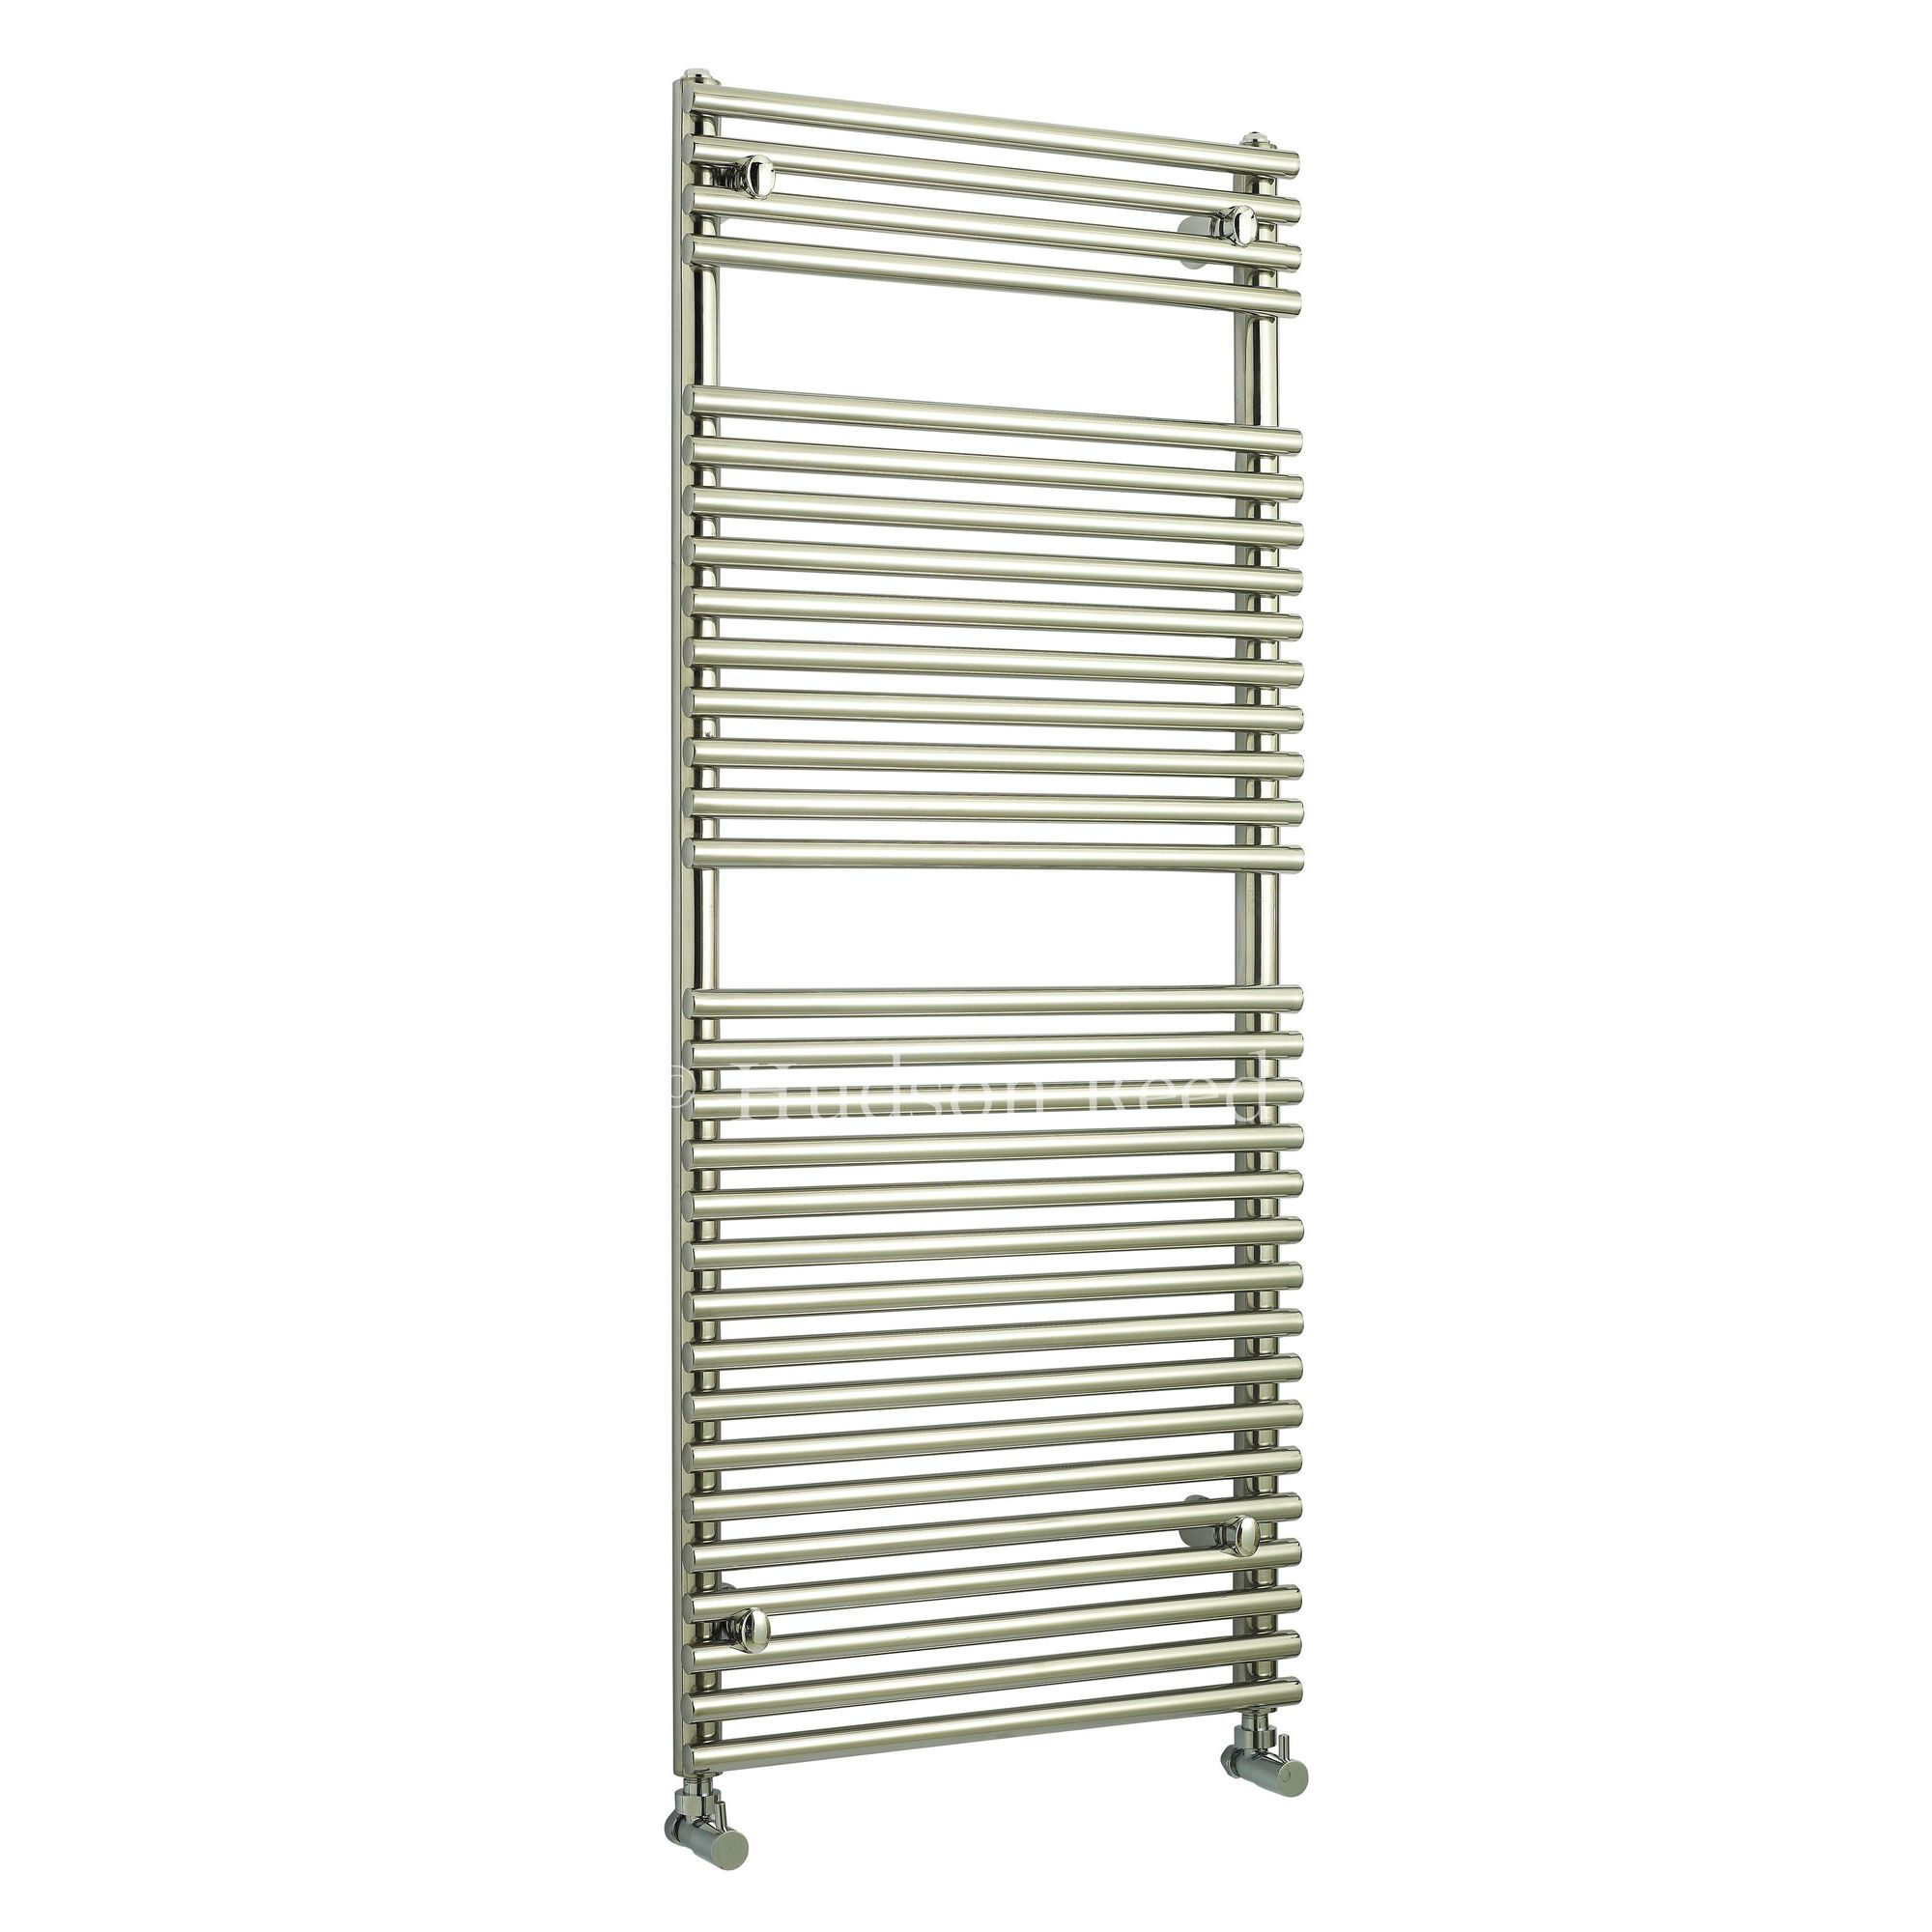 Hudson Reed Series 502 Heated Towel Rail - 180 cm x 38.1 cm at Tescos Direct